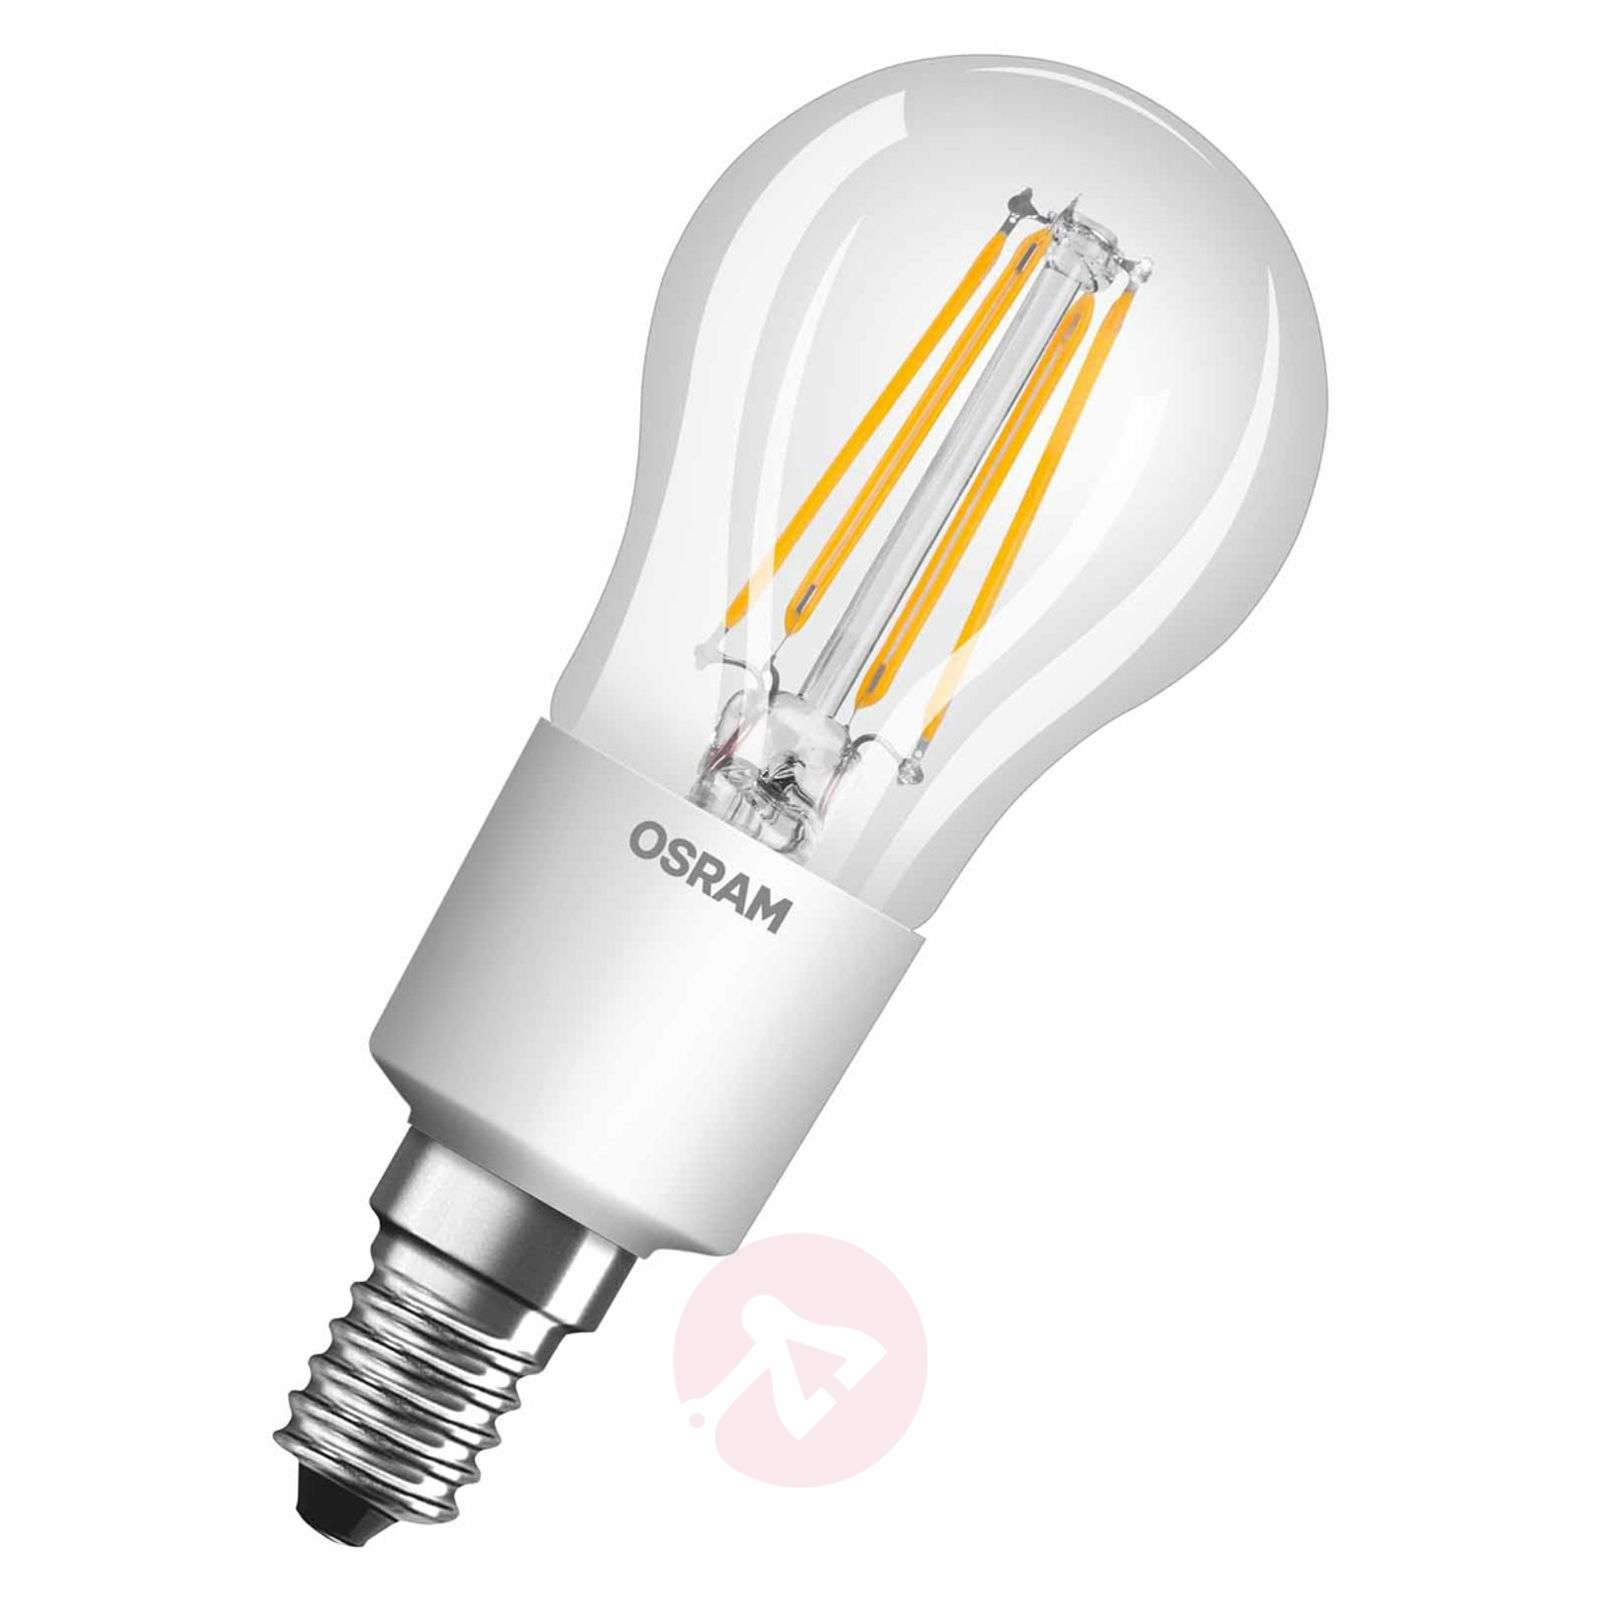 Ampoule goutte à filament LED E14 5 W, variable-7260987-01